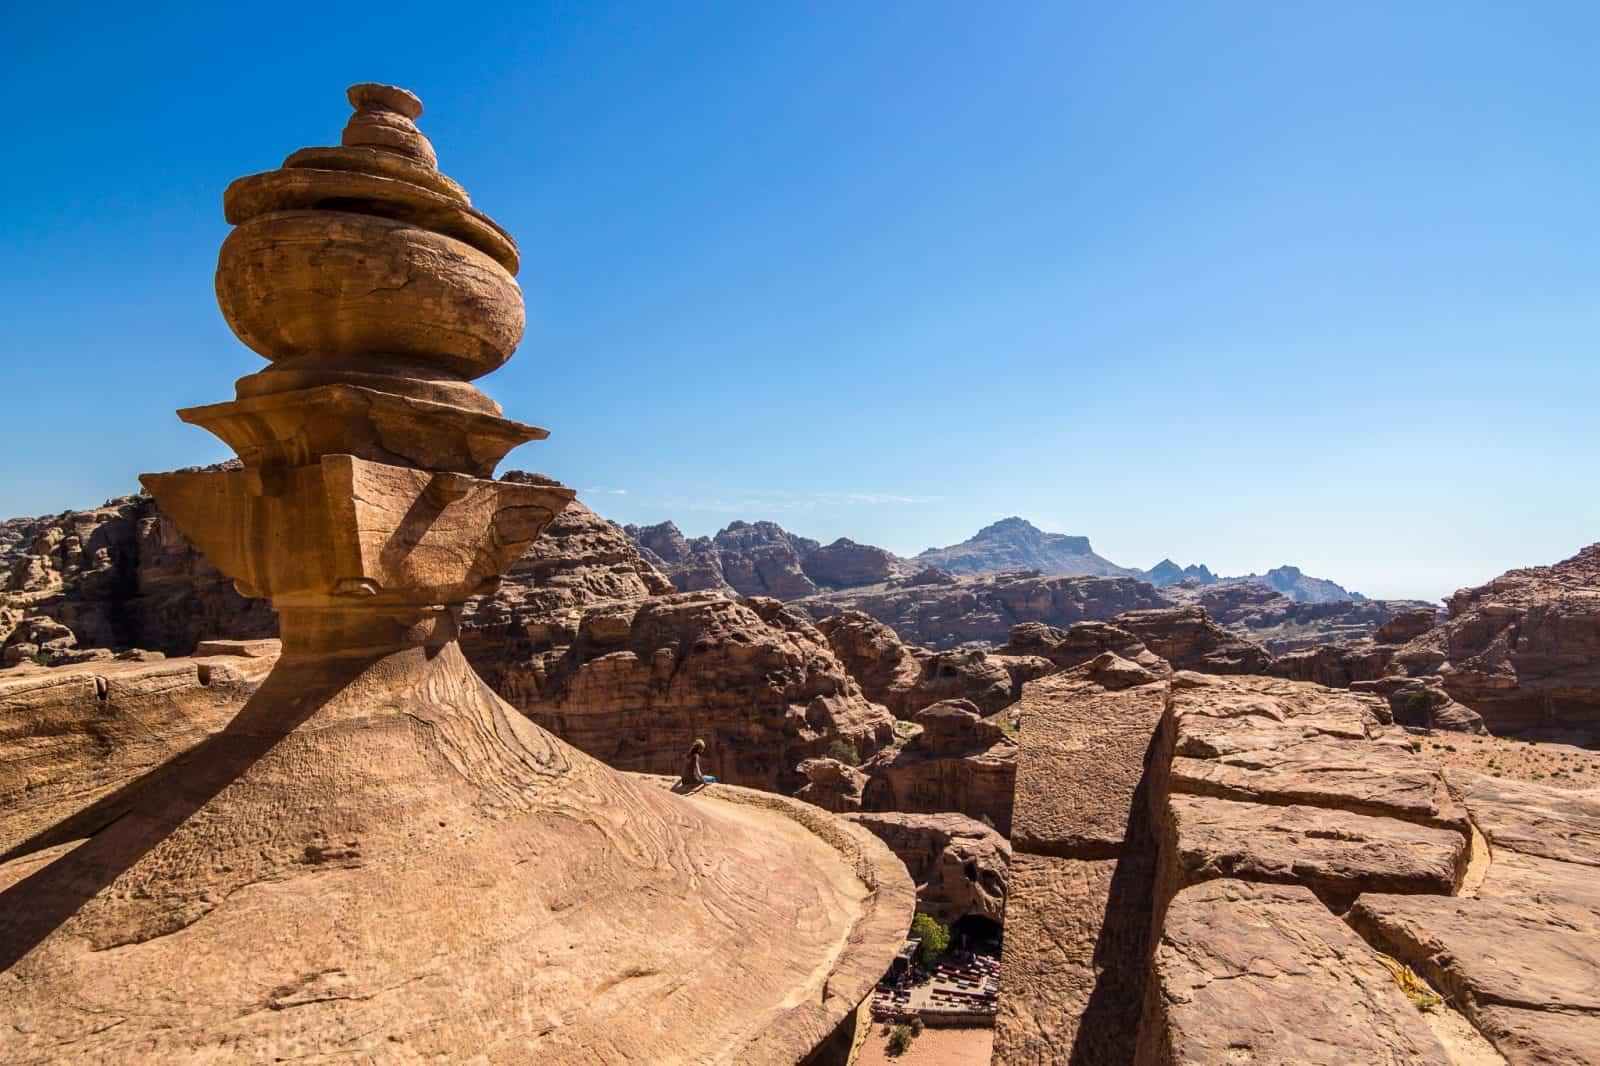 On top of the Monastery in the city of Petra, Jordan